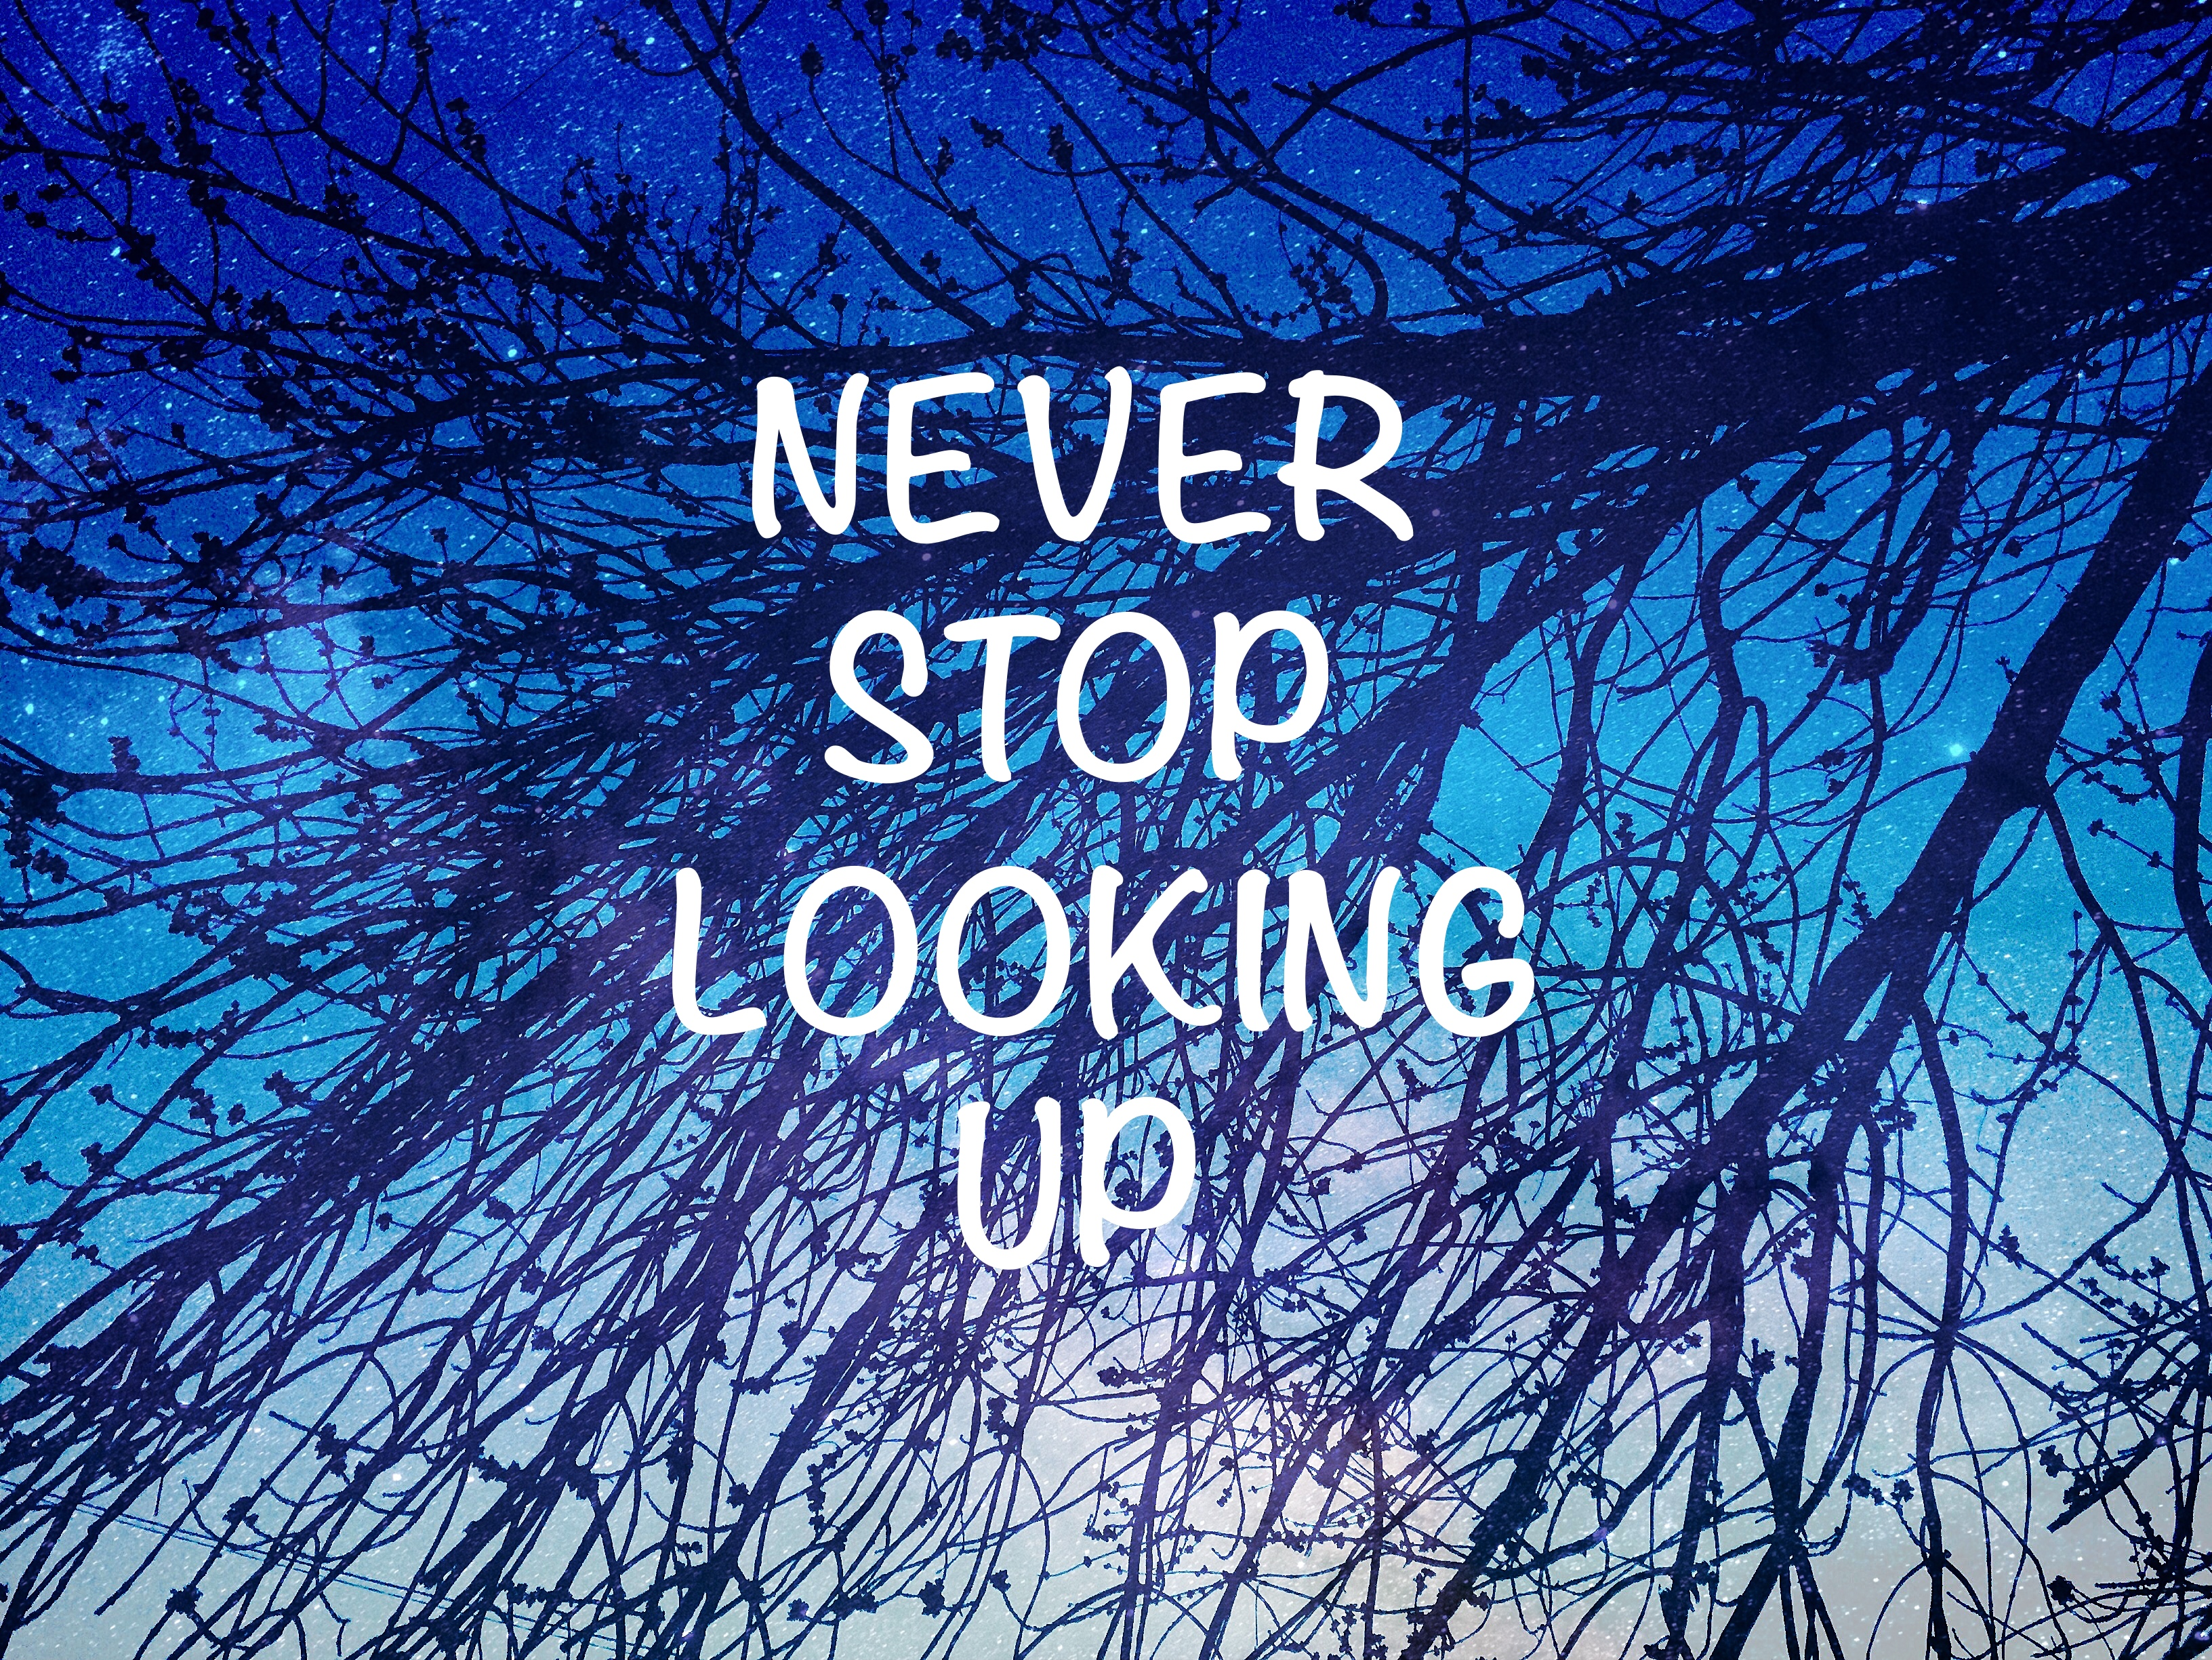 74767 download wallpaper Words, Starry Sky, Branches, Inscription, Motivation screensavers and pictures for free